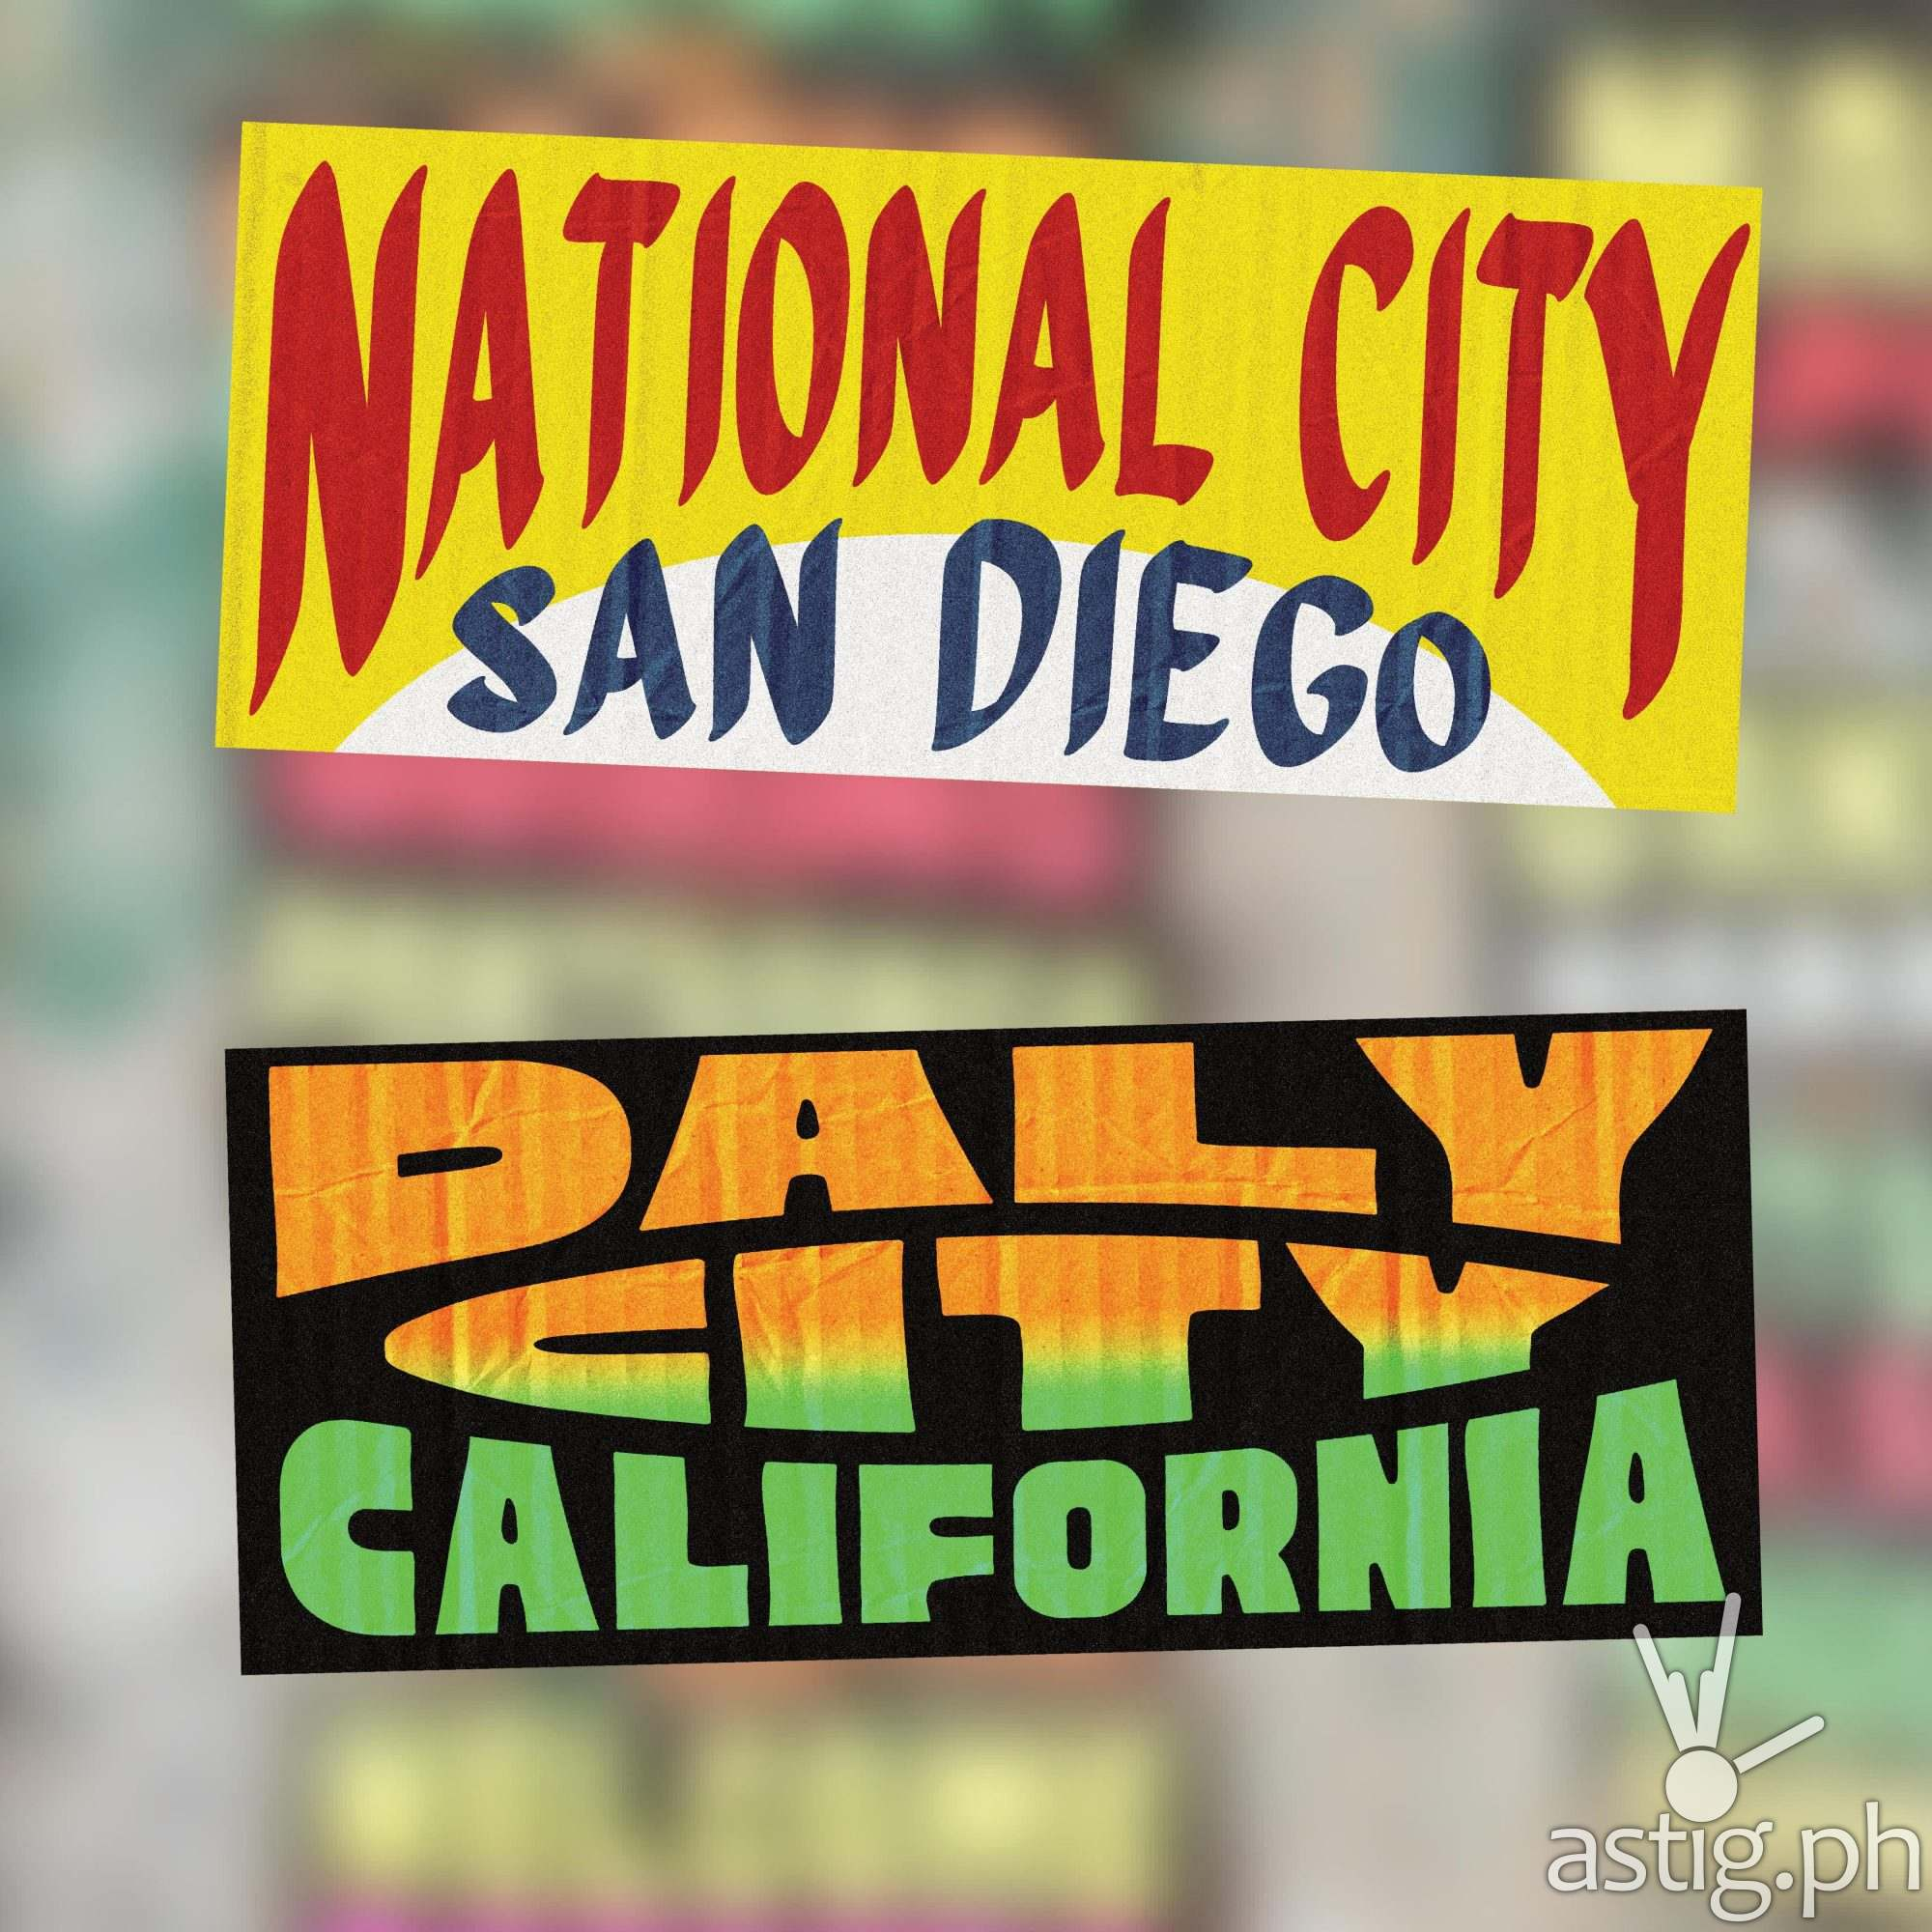 National City, San Diego and Daly City, California - US cities as jeepney signs from the Philippines by Zach Reyes